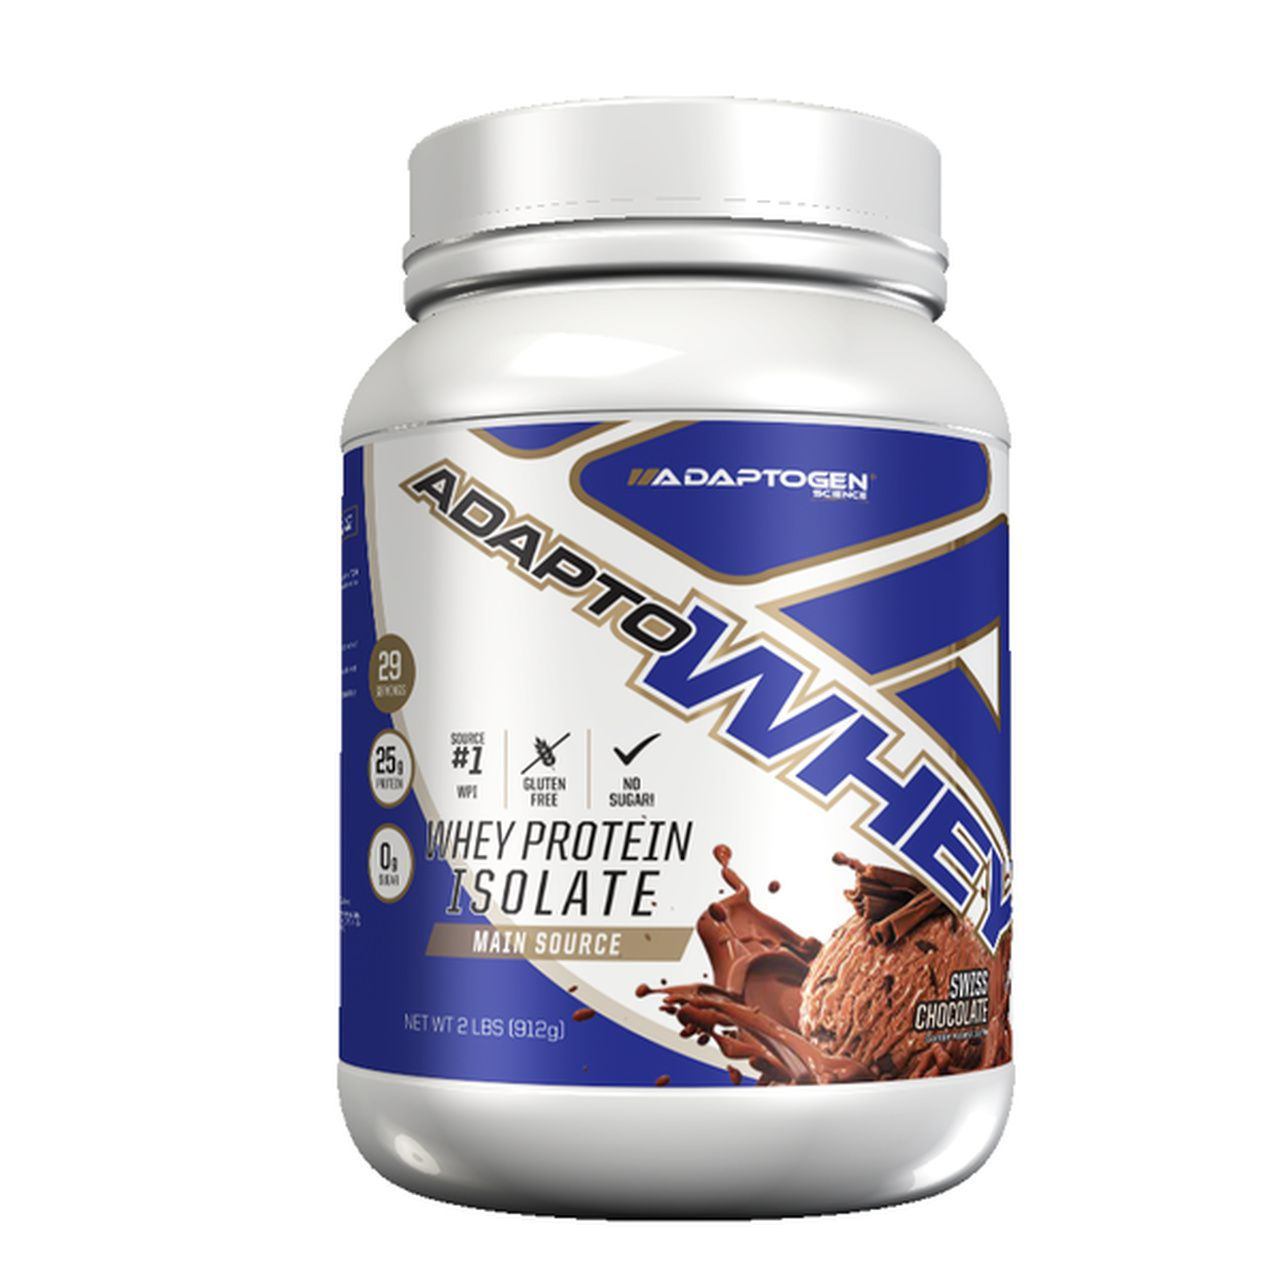 Adapto Whey (2lbs/910g) - Adaptogen Science